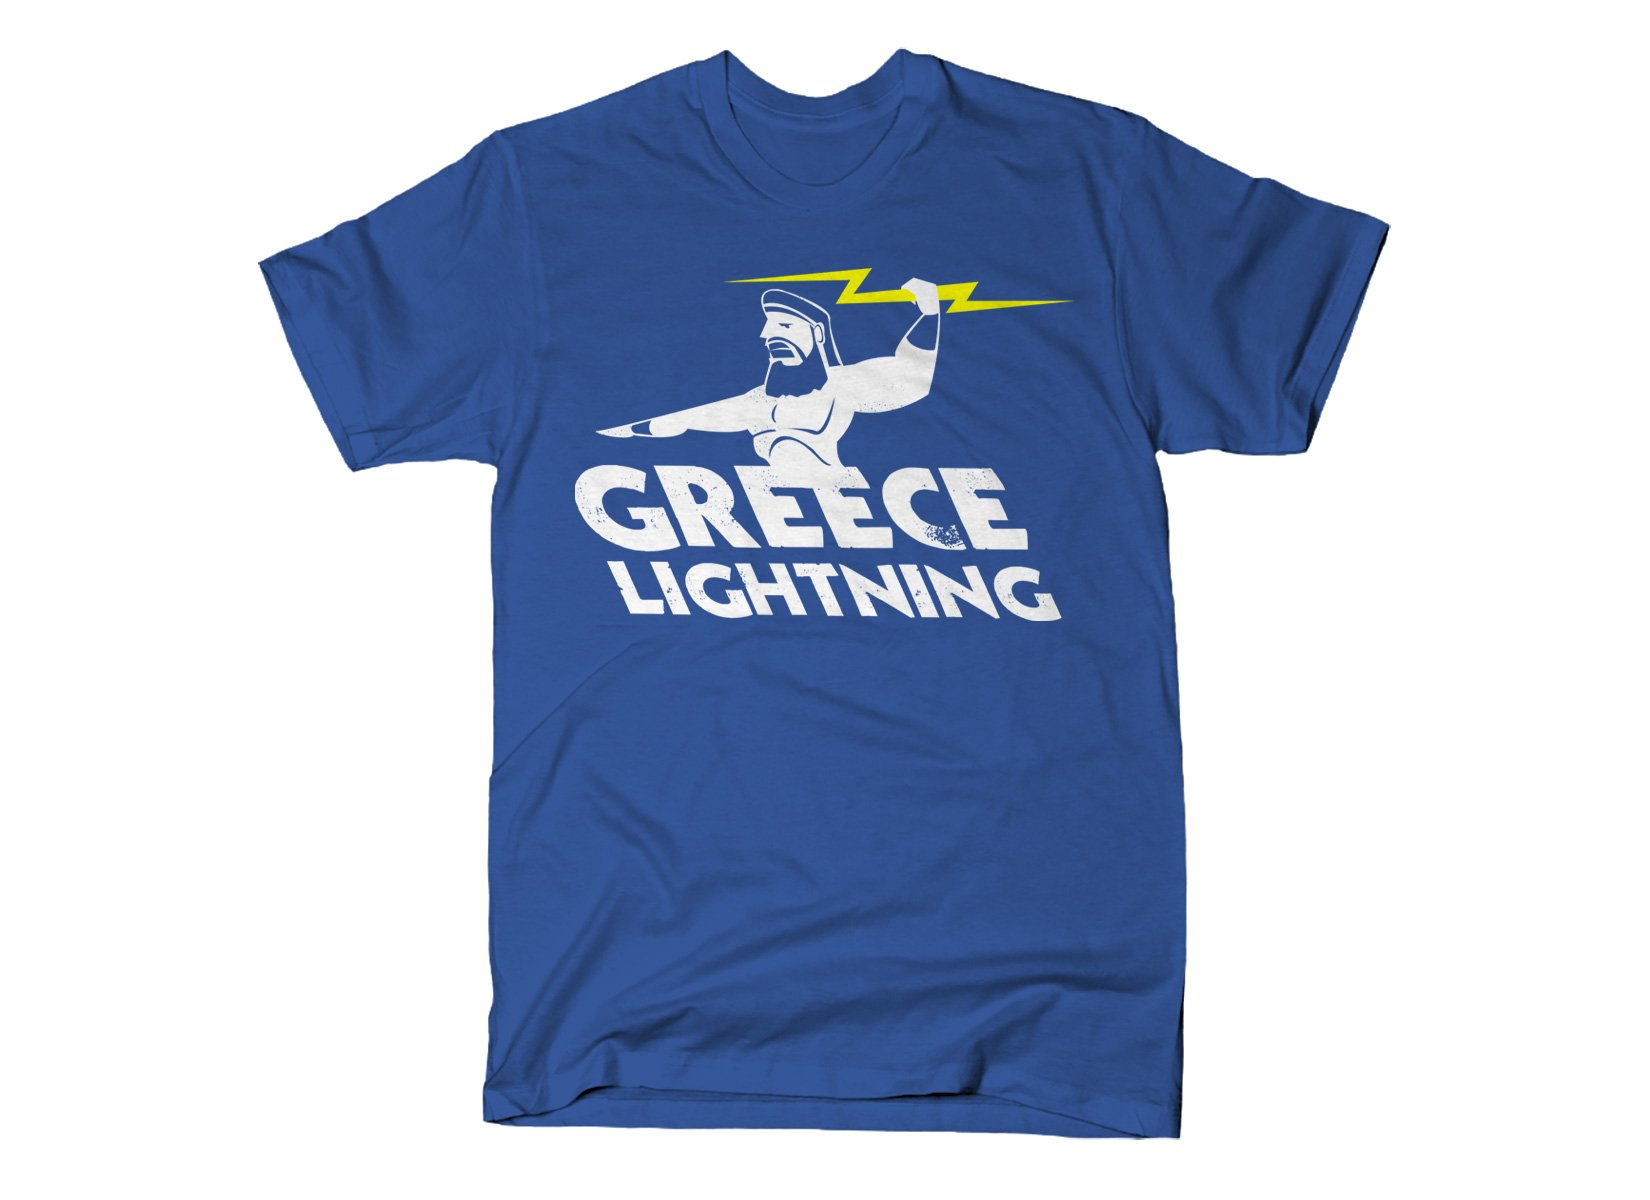 Greece Lightning on Mens T-Shirt